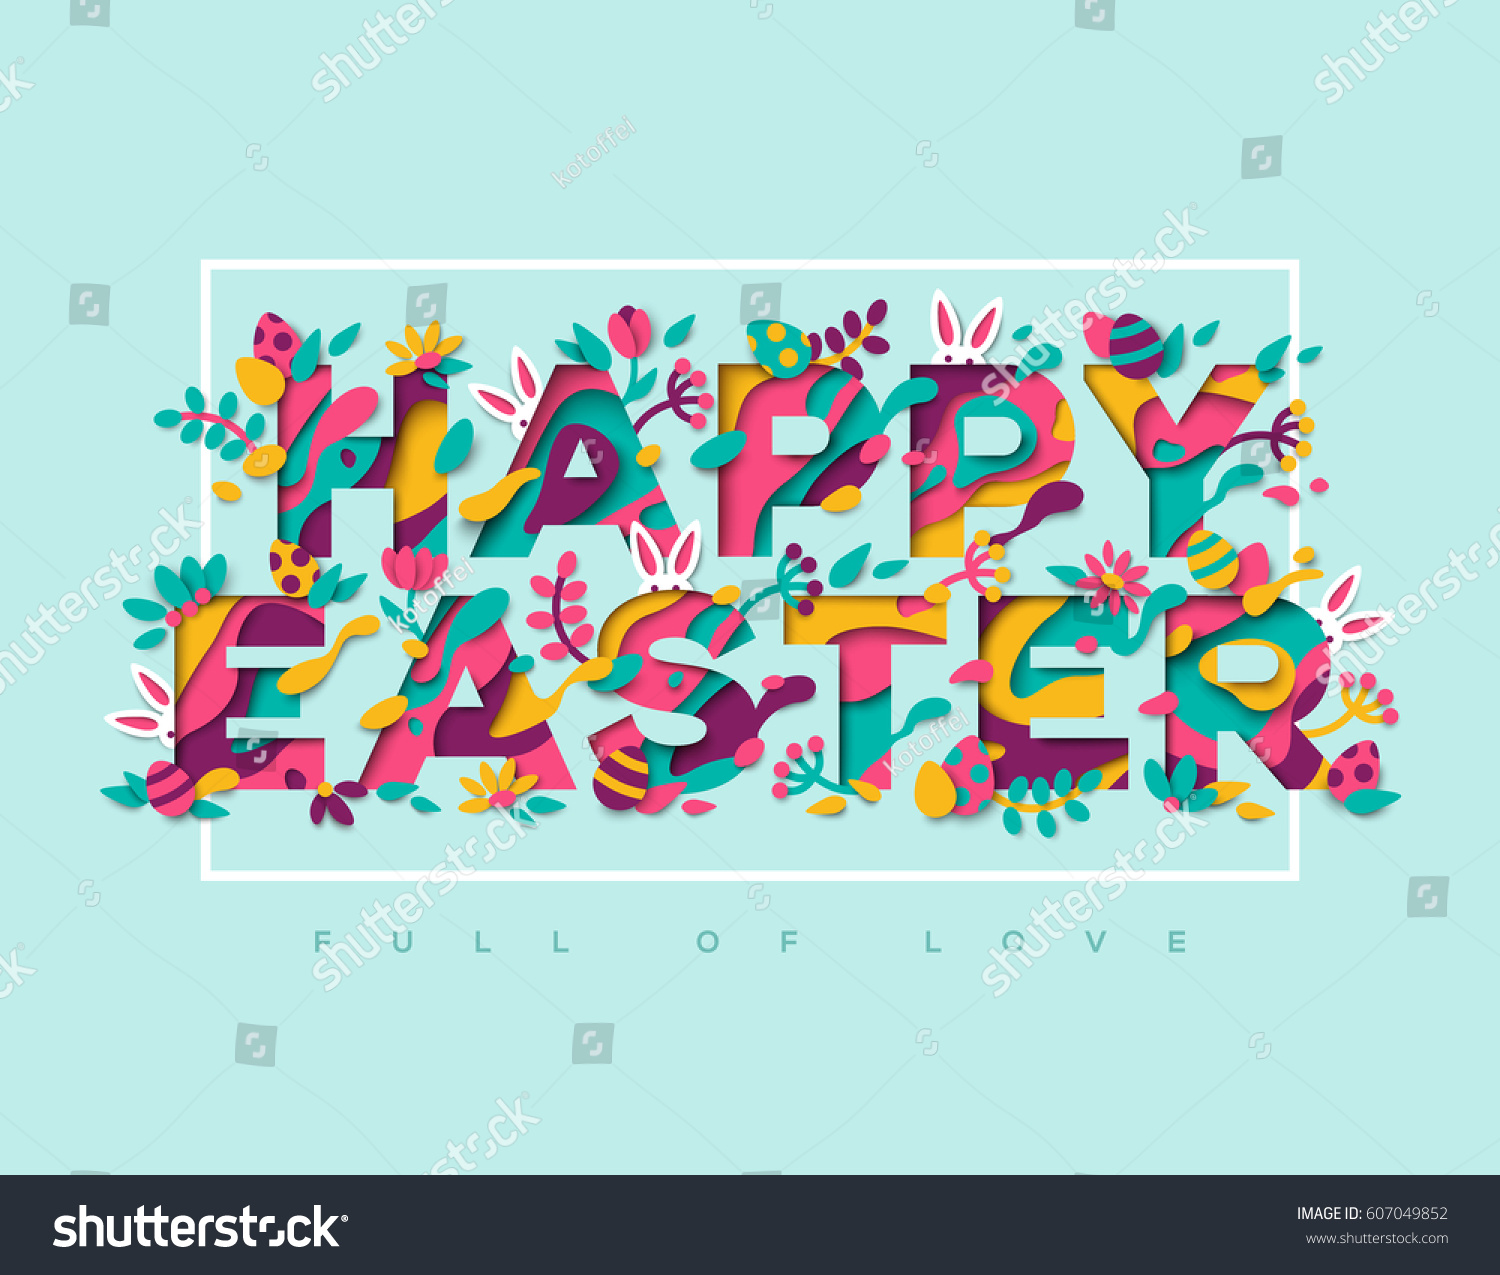 Similar Images Stock Photos Vectors Of Happy Easter Greeting Card